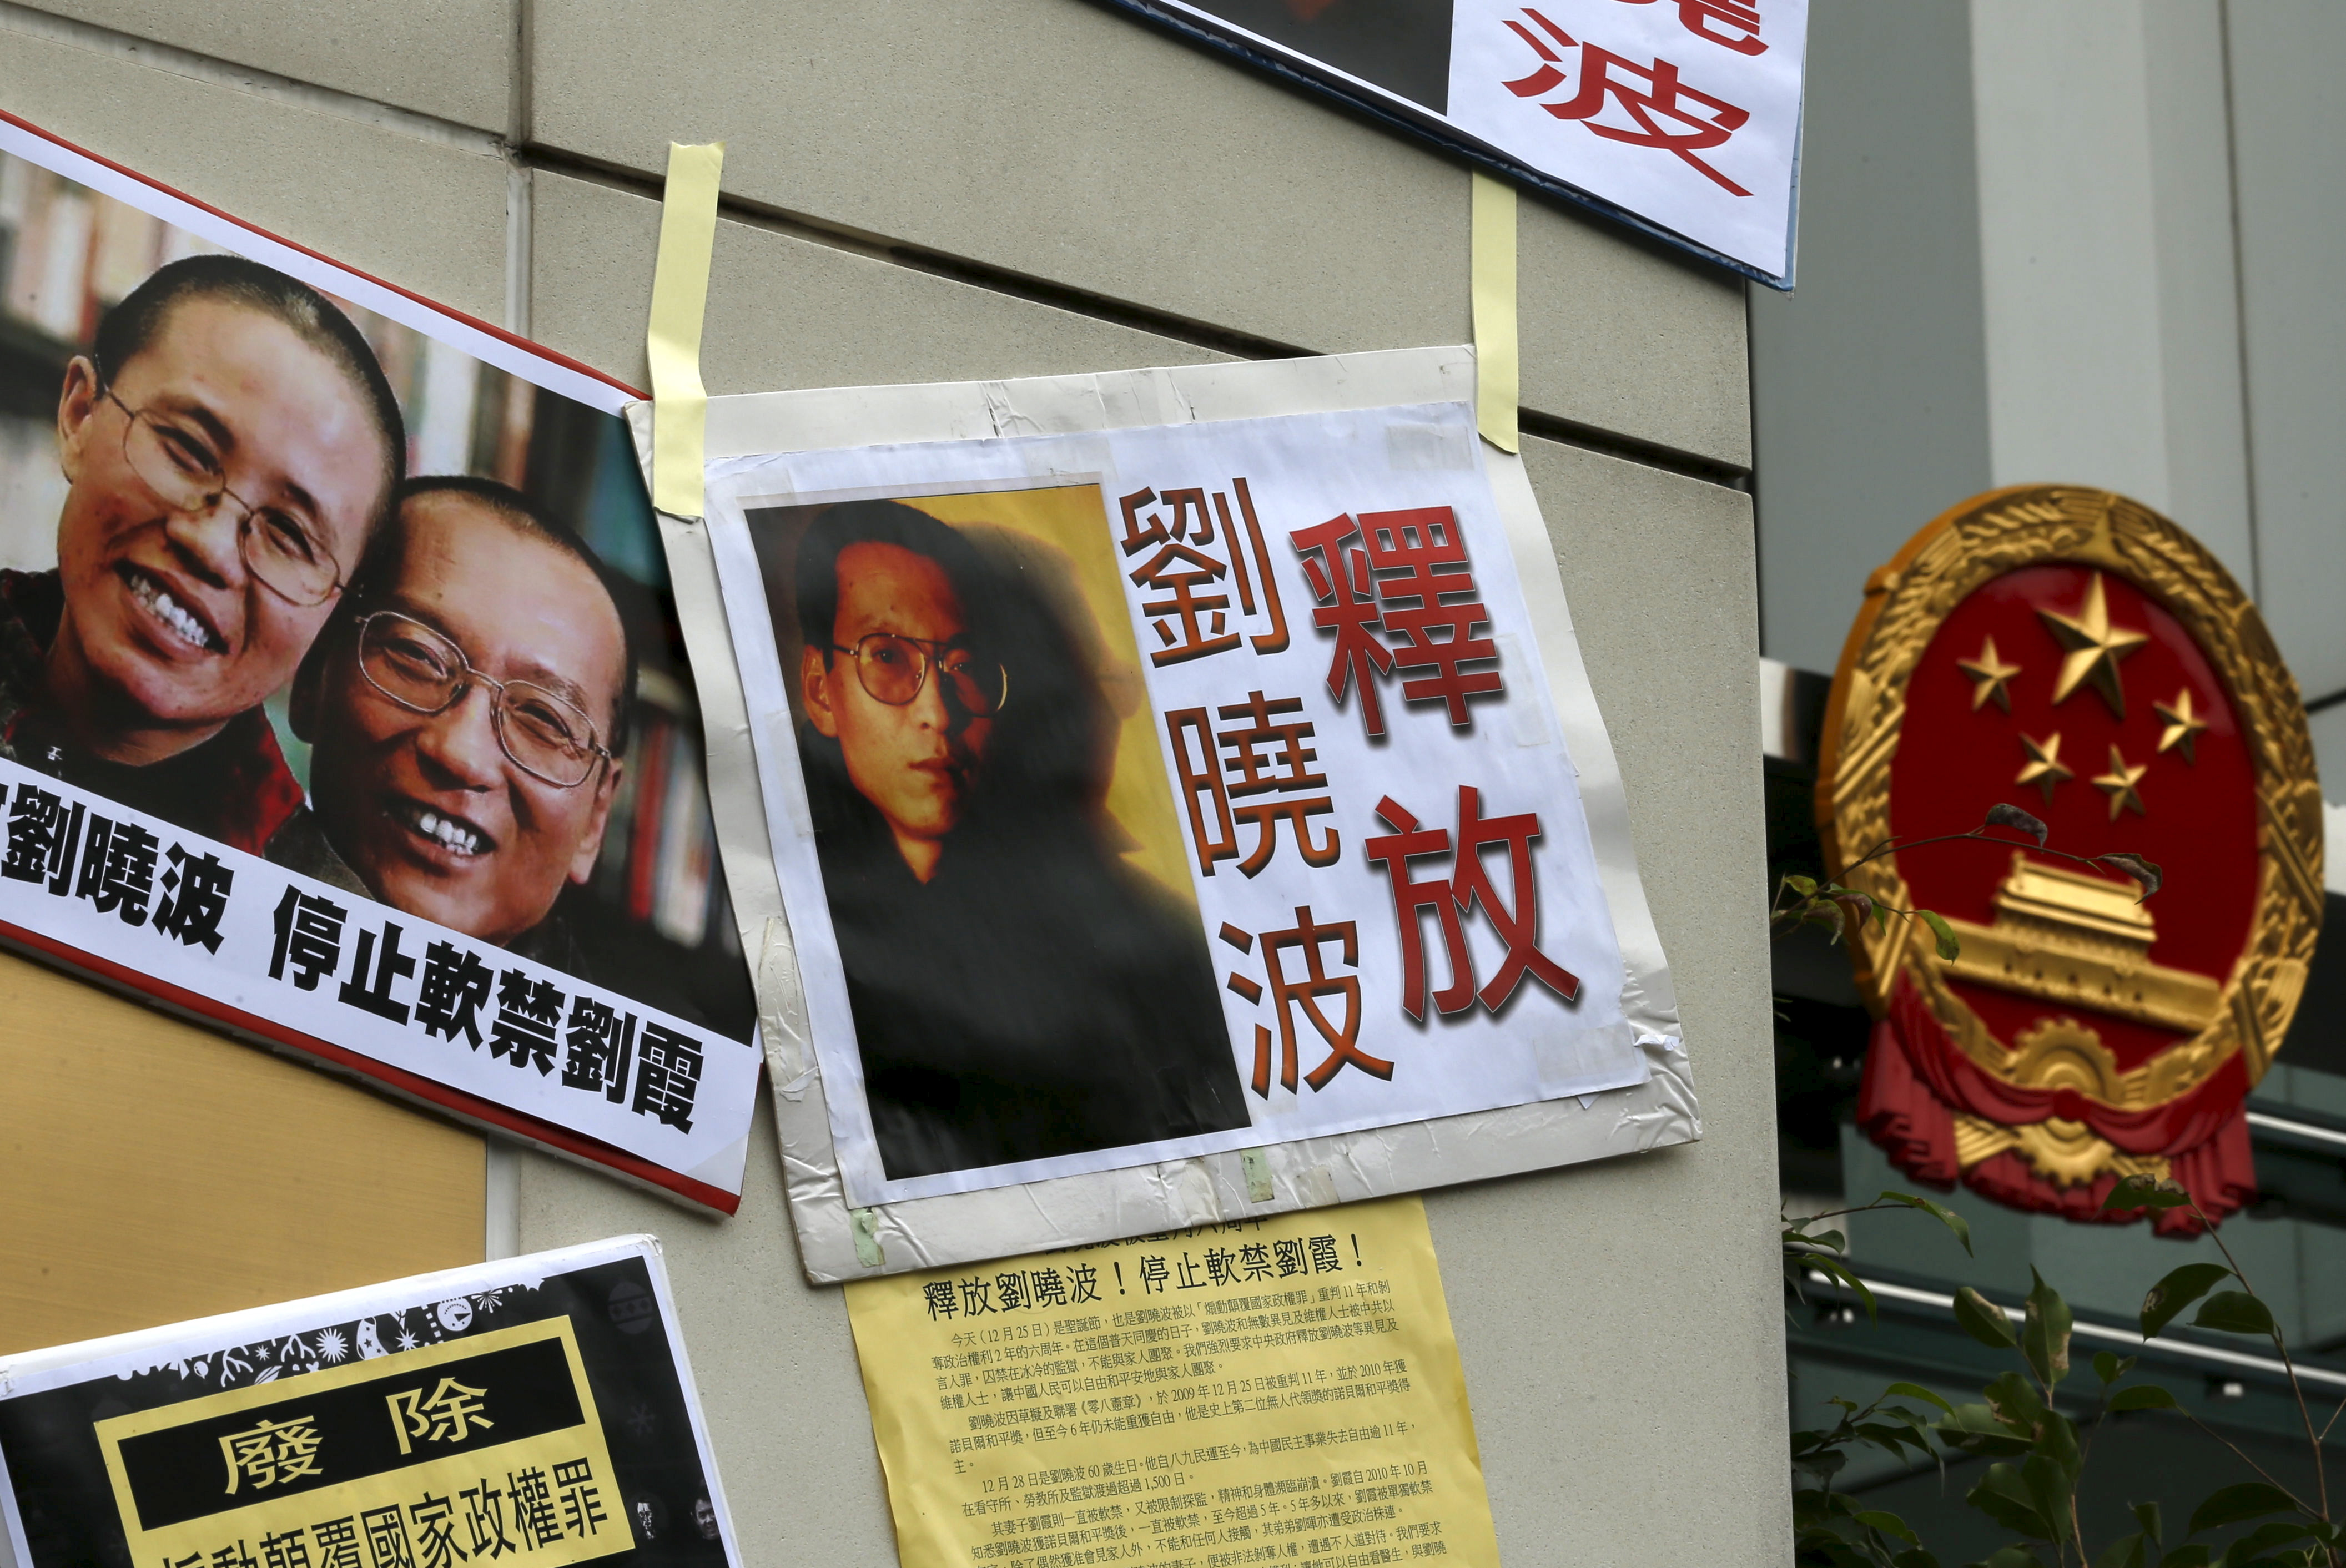 Signs and portraits of jailed Chinese Nobel Peace Prize laureate Liu Xiaobo and his wife Liu Xia during a protest outside the Chinese liaison office in Hong Kong on Dec. 25, 2015